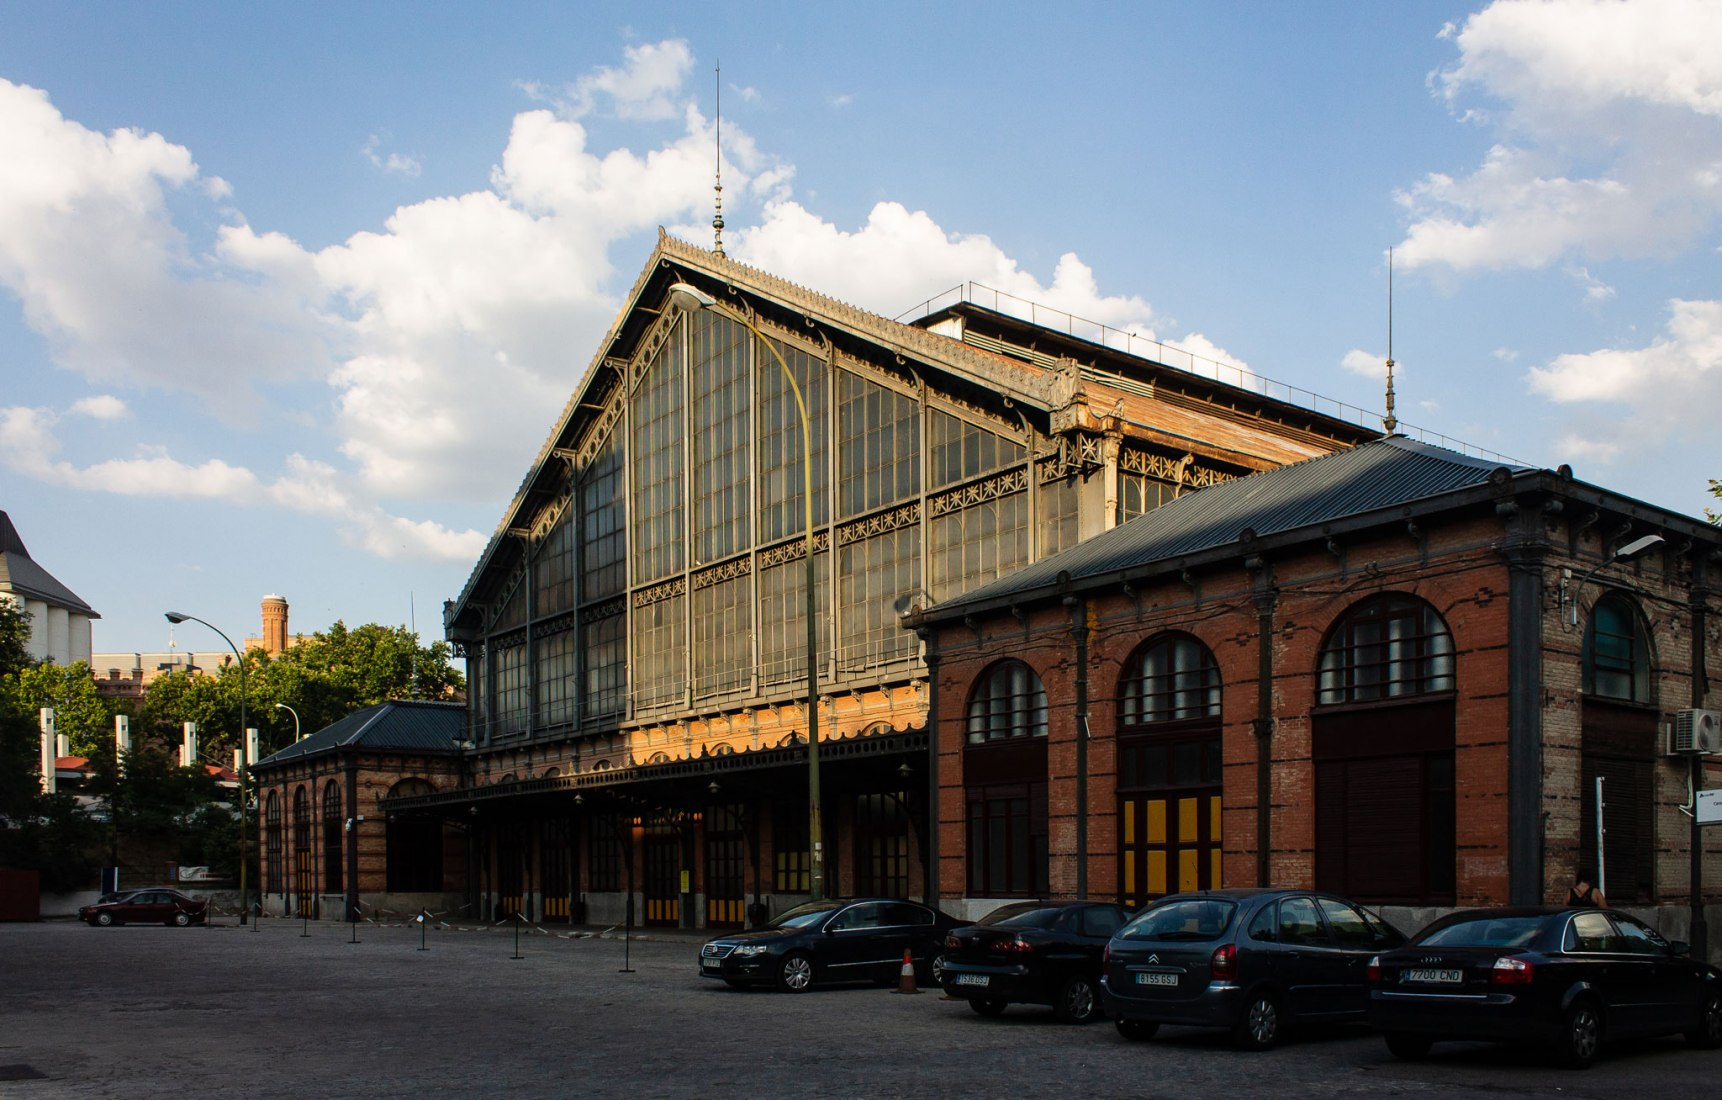 Exterior view. The Railway Museum in Open House Madrid 2018. Photograph by Judit Otero / METALOCUS